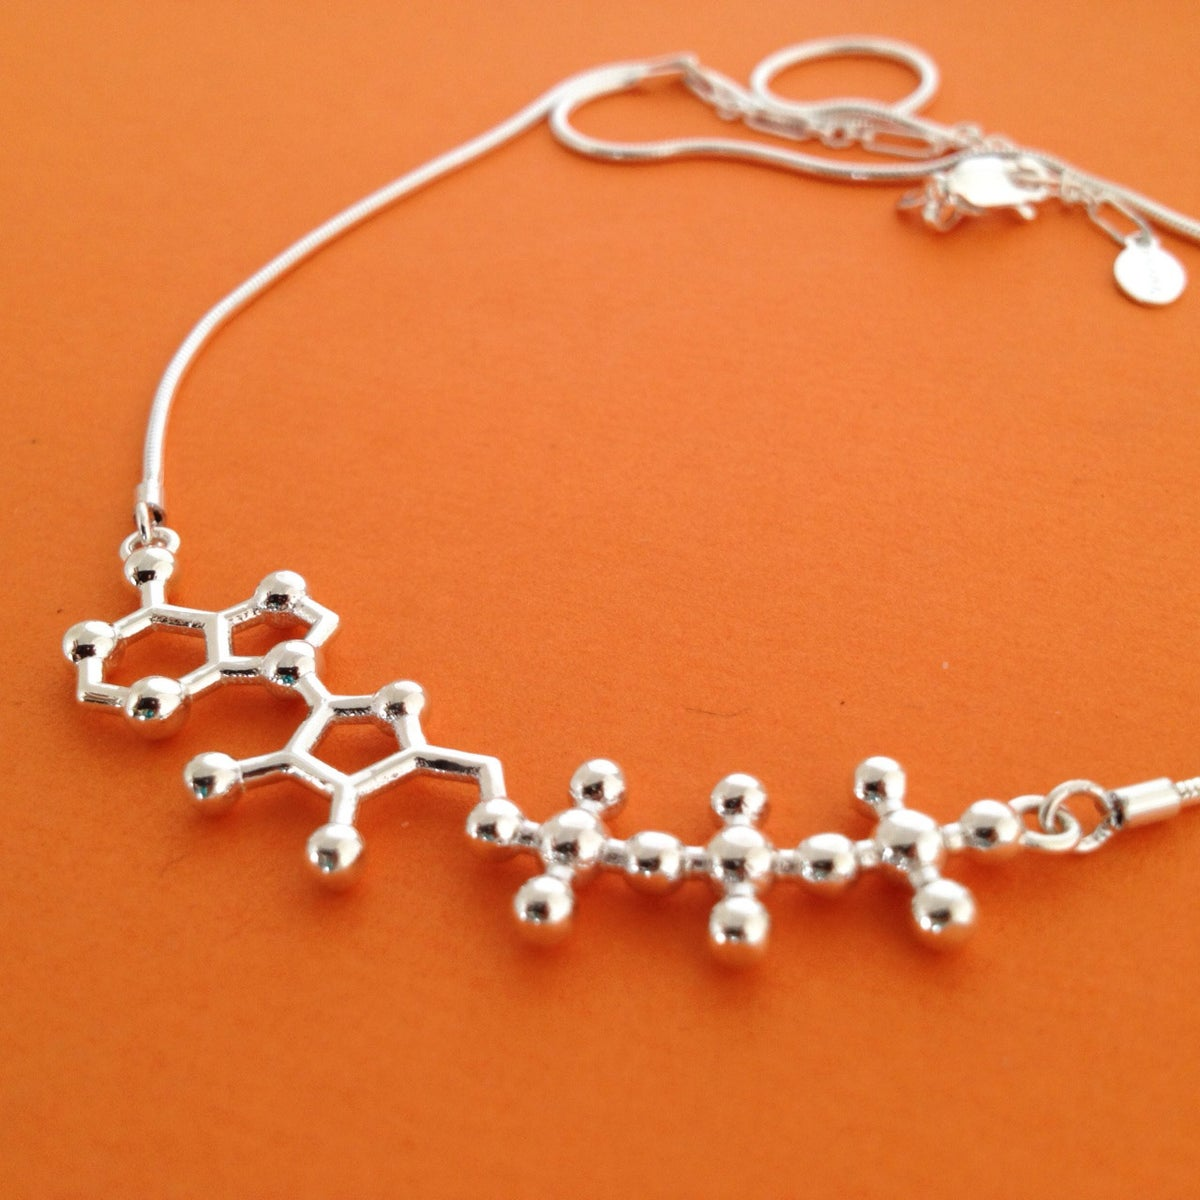 Image of ATP necklace